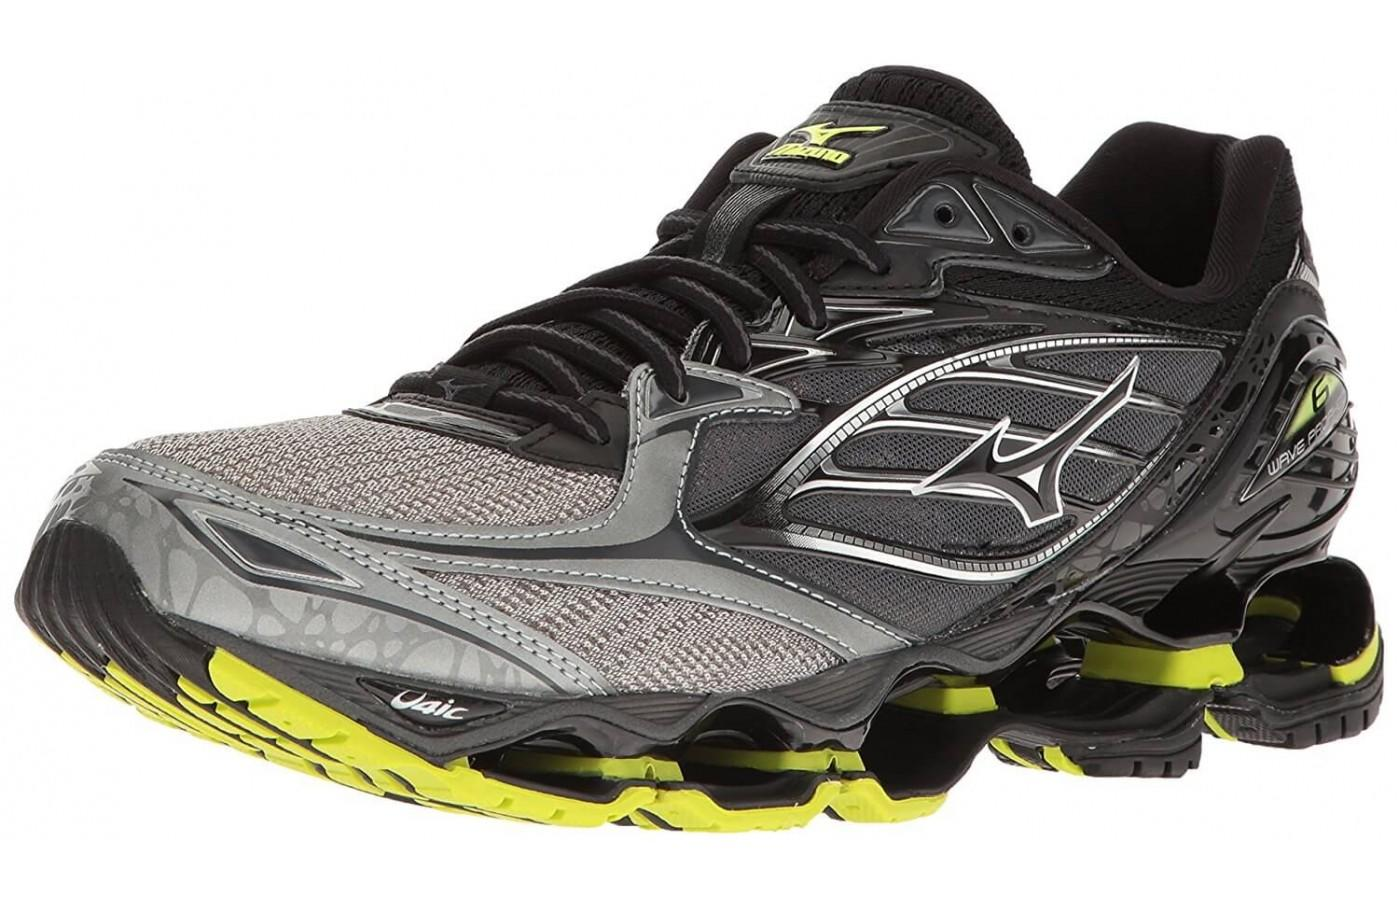 Runners love the unique style and design of the Mizuno Wave Prophecy 6 Nova  ... 9451d6efd